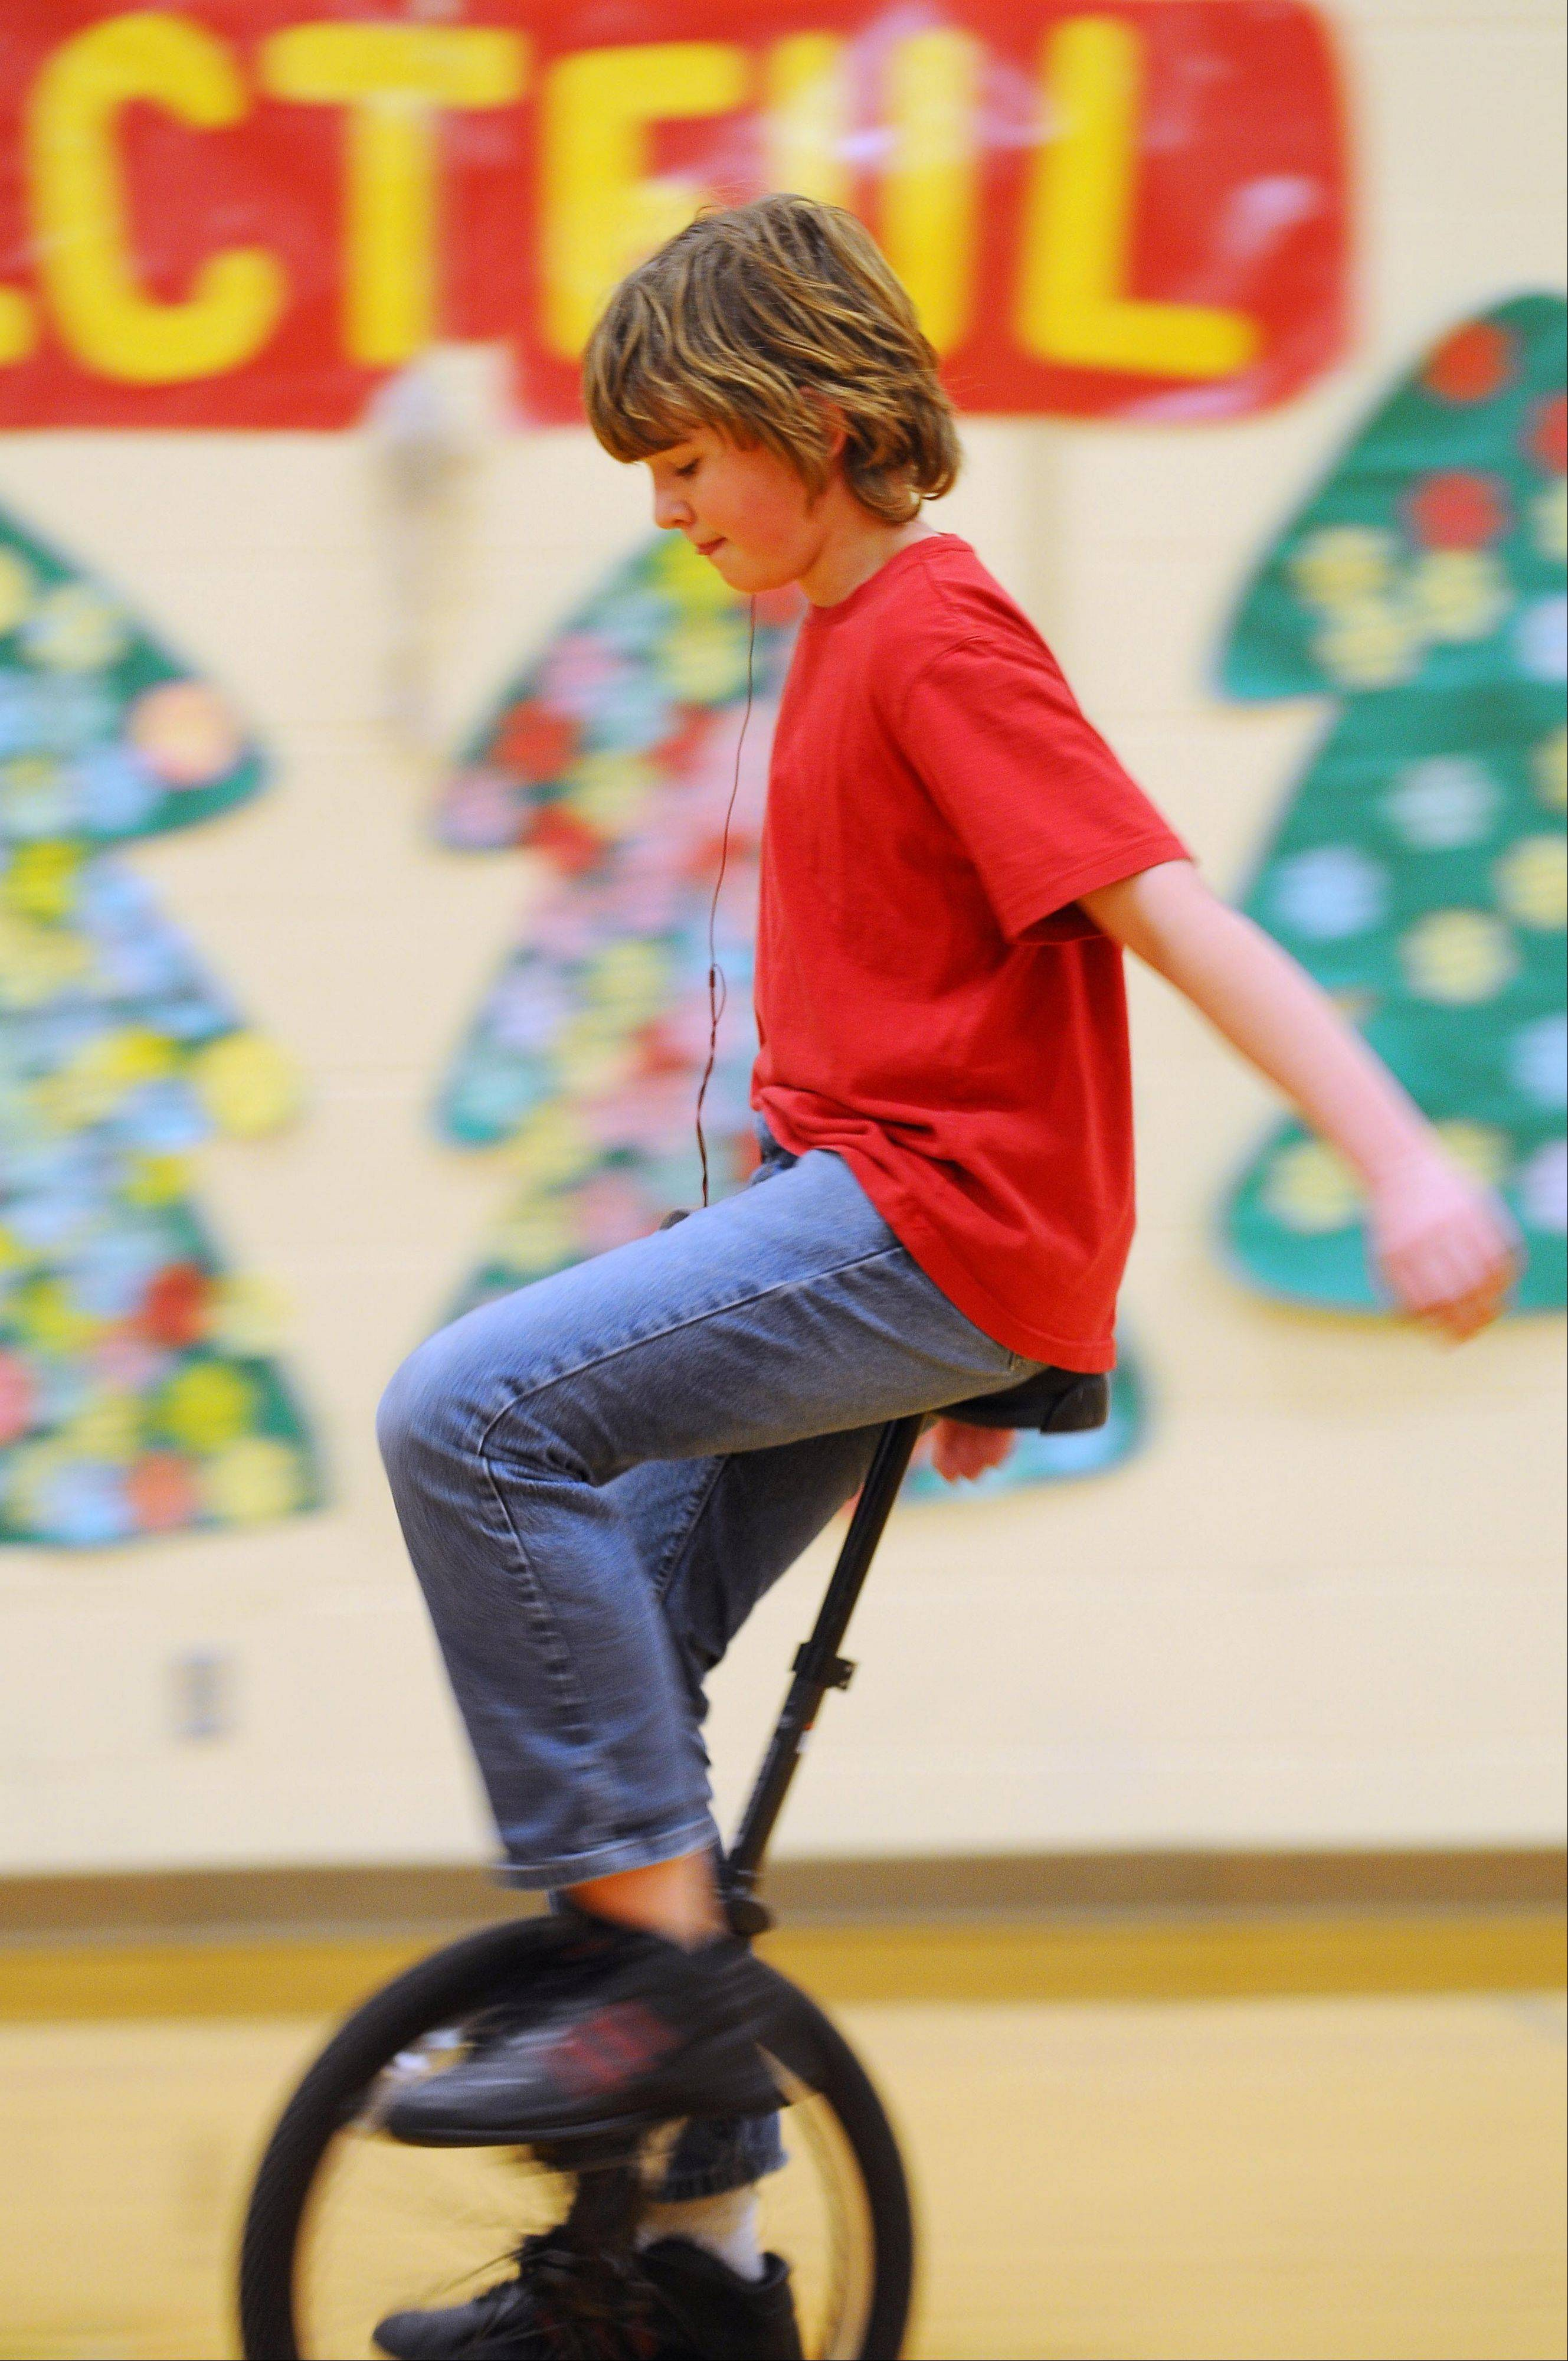 Ethen Jensen, thirteen years-old, rides a unicycle in the gymnasium at St. Croix Central Elementary School in Roberts, Wis. Ethan participates in a community education program hosted by the St. Croix Central School district that welcomes young and old to learn and master the unicycle with the assistance of the Twin Cities Unicycle Club.